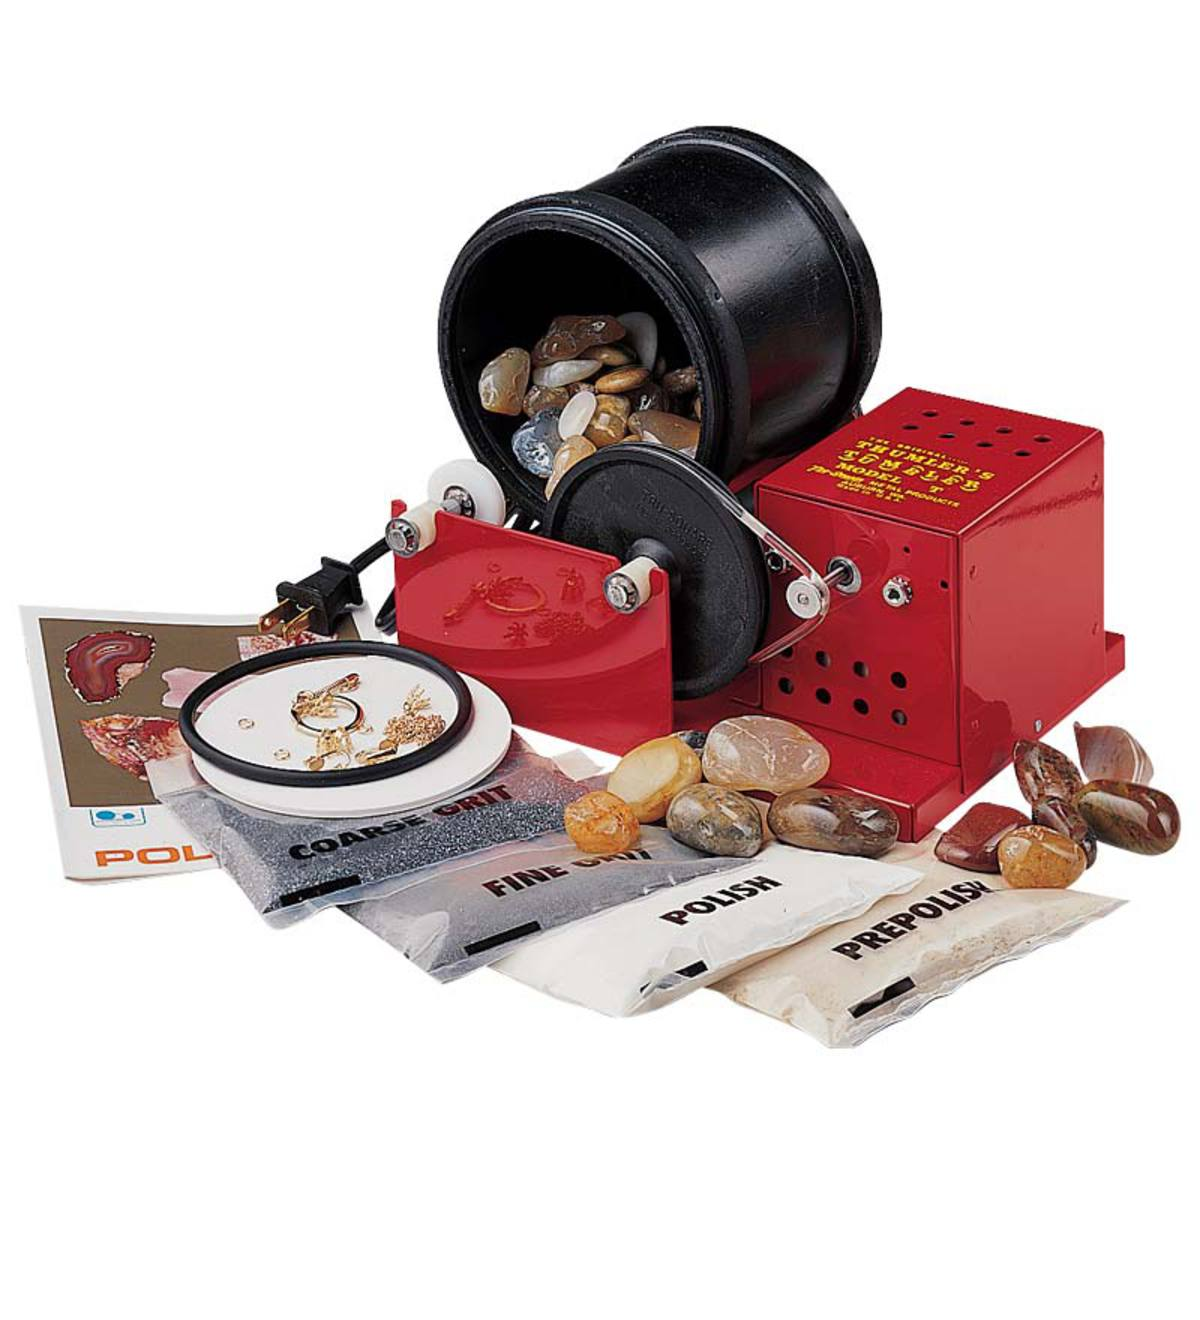 Heavy-Duty Rock Polishing Kit with Rubber Tumbling Barrel and Assorted Rocks